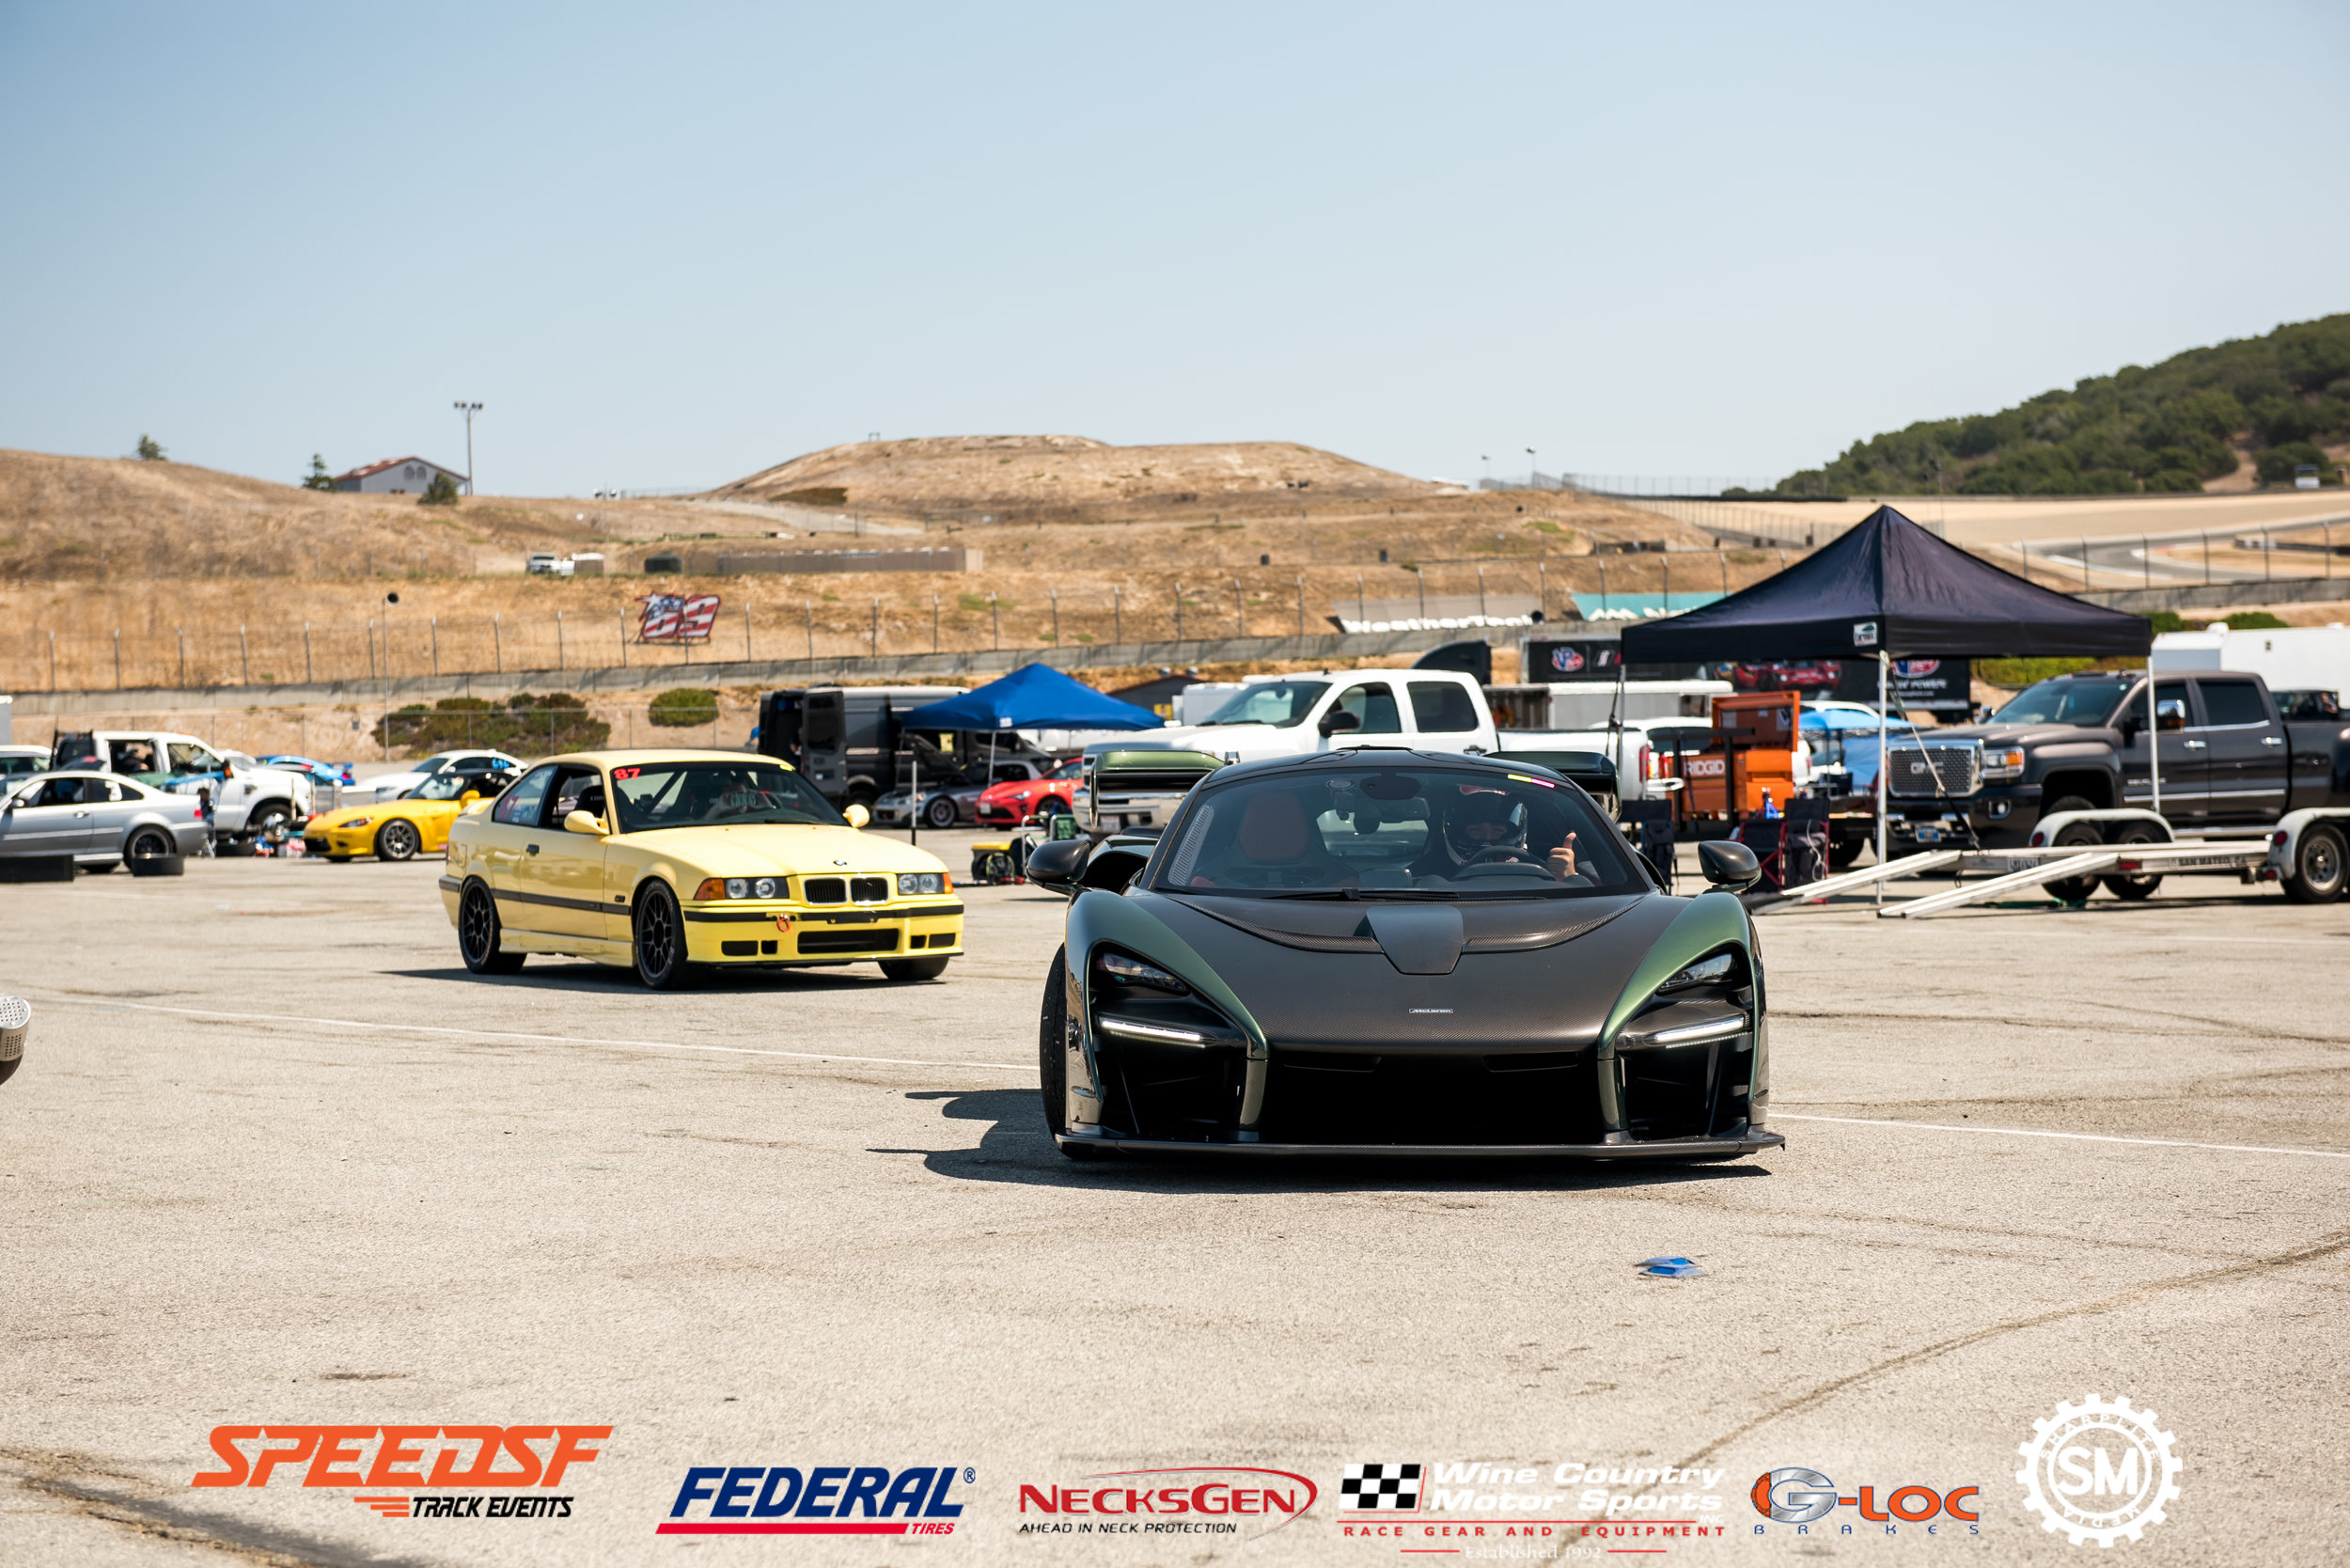 SpeedSF Paddock Sunday-42.jpg